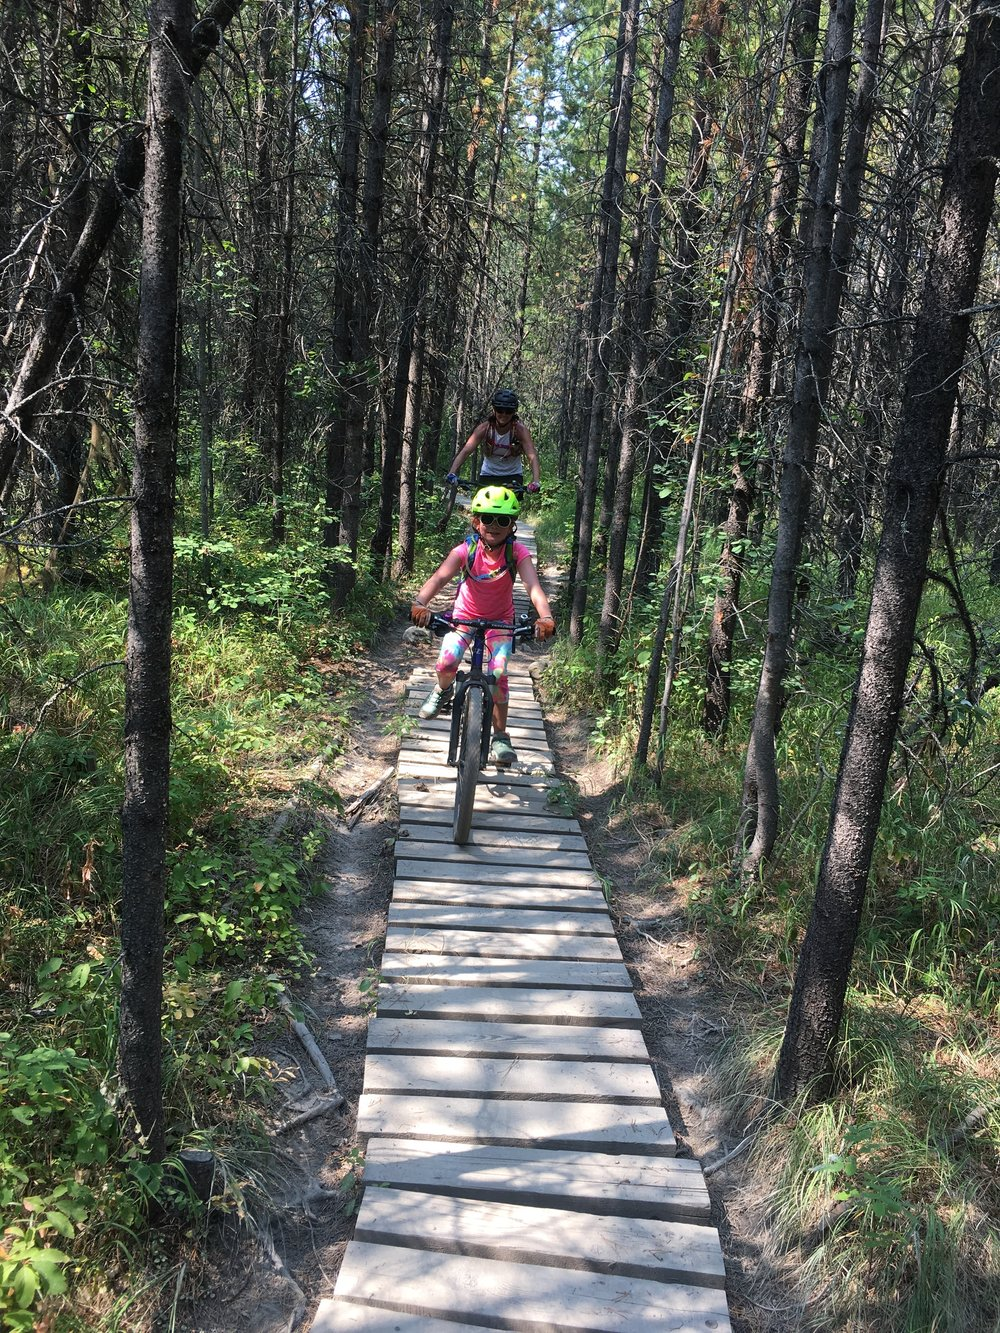 Me and Isla - we loved all the boardwalks on the trails!